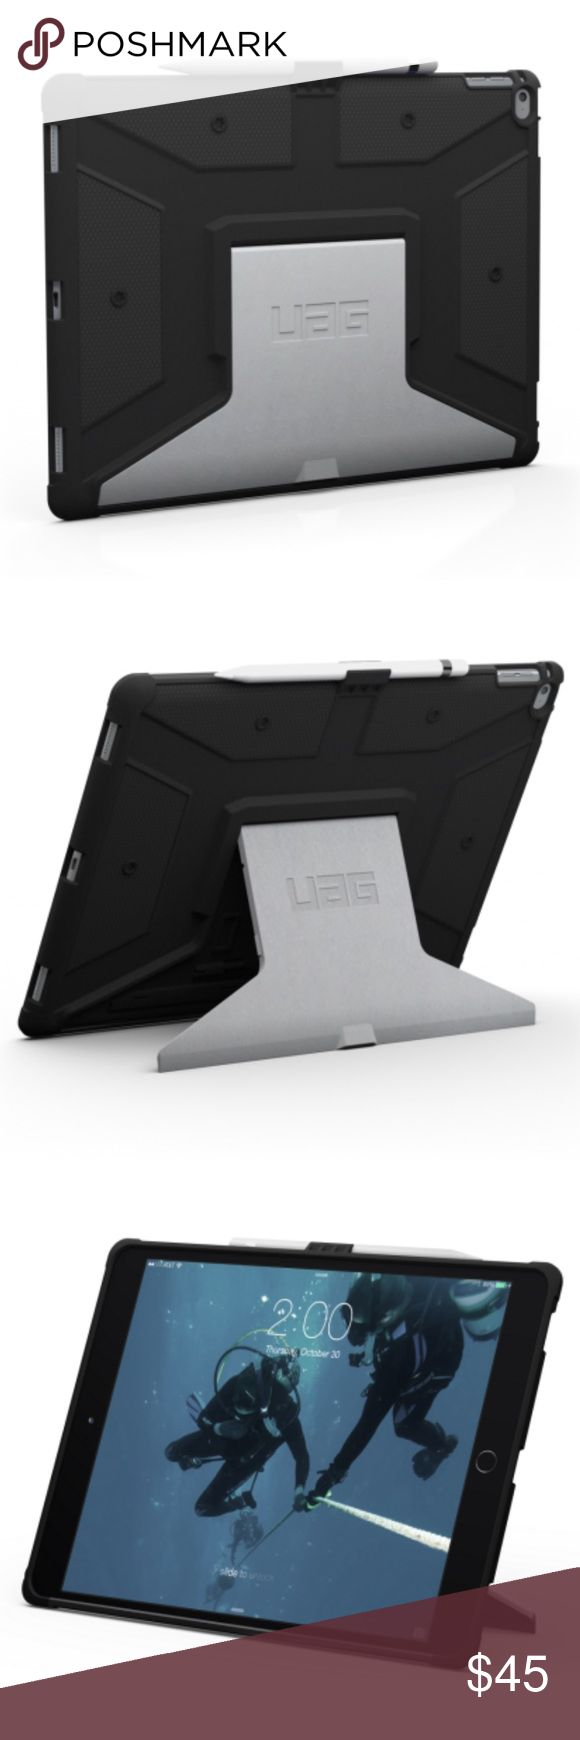 UAG IPad Pro Case UAG iPad Pro Case / Never Used / MSRP: $79.95  Urban Armor Gear iPad Pro Case Features: Impact-resistant soft core & Frogskin exterior non-slip grip Aluminum stand with 5 angular positions and portrait viewing mode Uncompromised audio and full access to touchscreen, buttons and ports Built-in Apple Pencil holder Compatible with Apple Smart Keyboard and Smart Cover Meets military drop-test standards (MIL STD 810G-516.6) when used with Apple Smart Keyboard or Smart Cover…